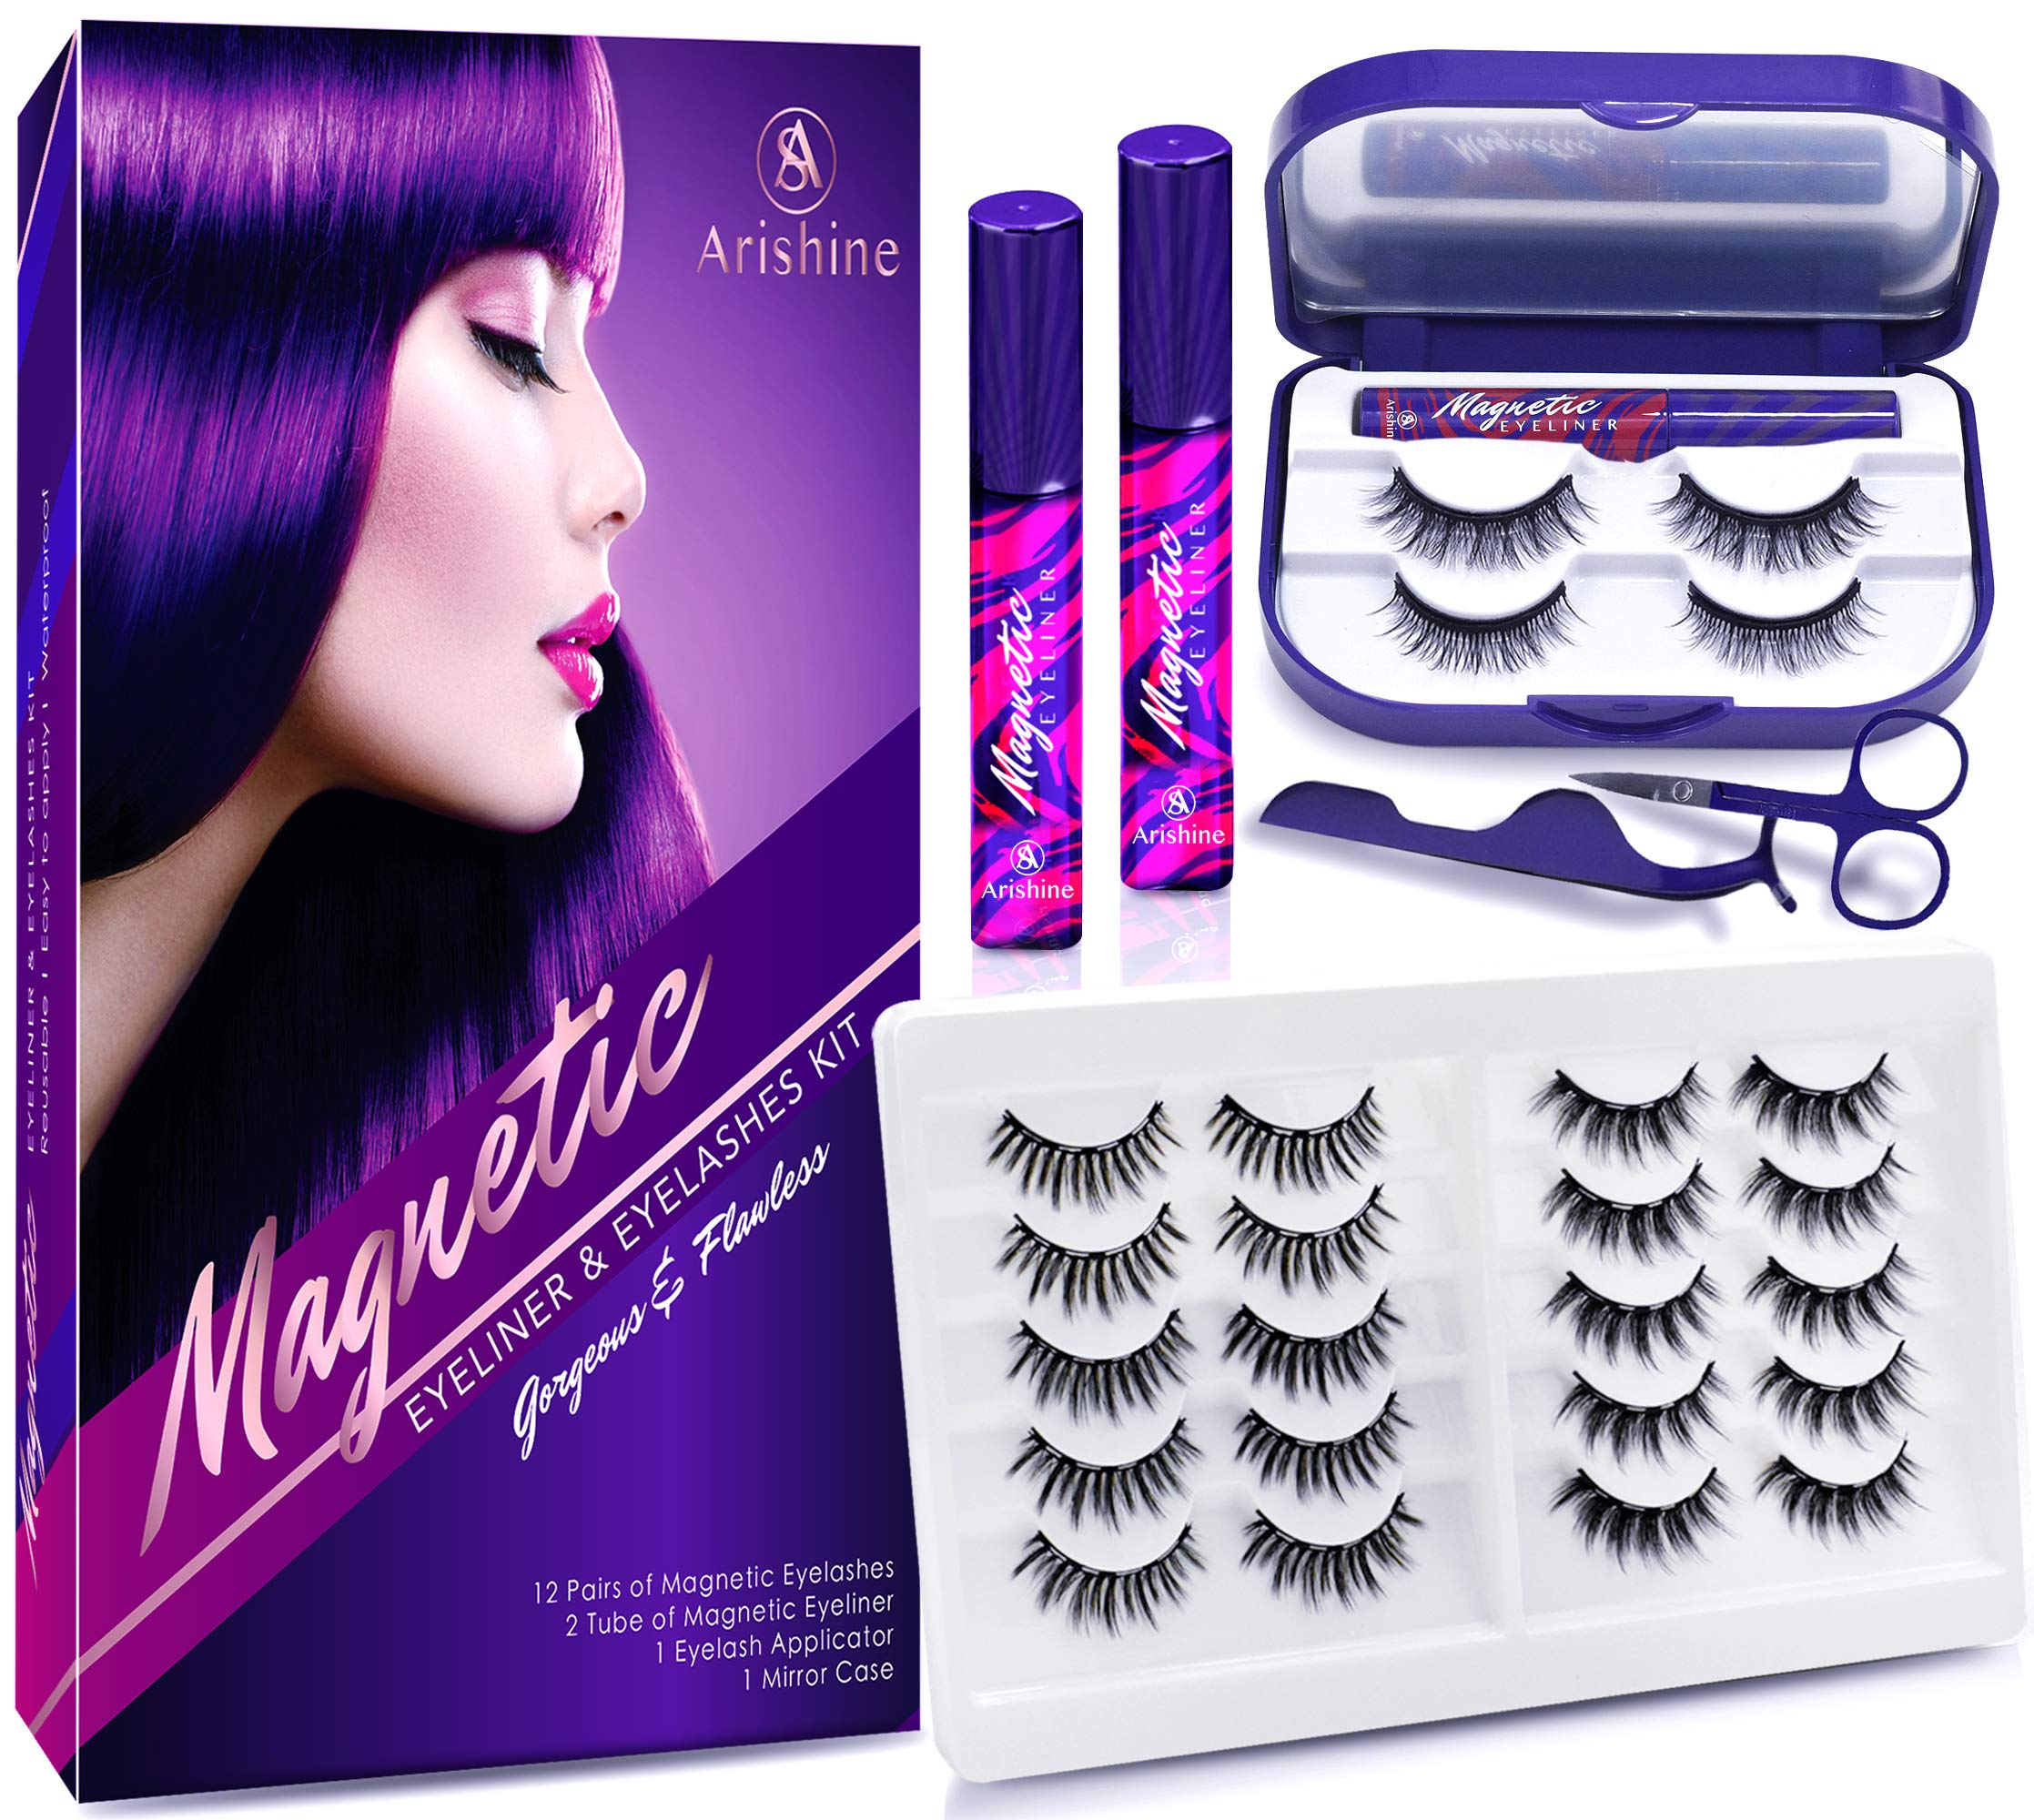 Arishine 3D 5D Magnetic Eyelashes with Eyeliner Kit, 10-Pair Reusable Fluffy Magnetic Lashes, 2 Pair Natural magnetic Eyelashes with 2 Tubes of Magnetic Eyeliner with Scissors Tweezers & Mirror Case